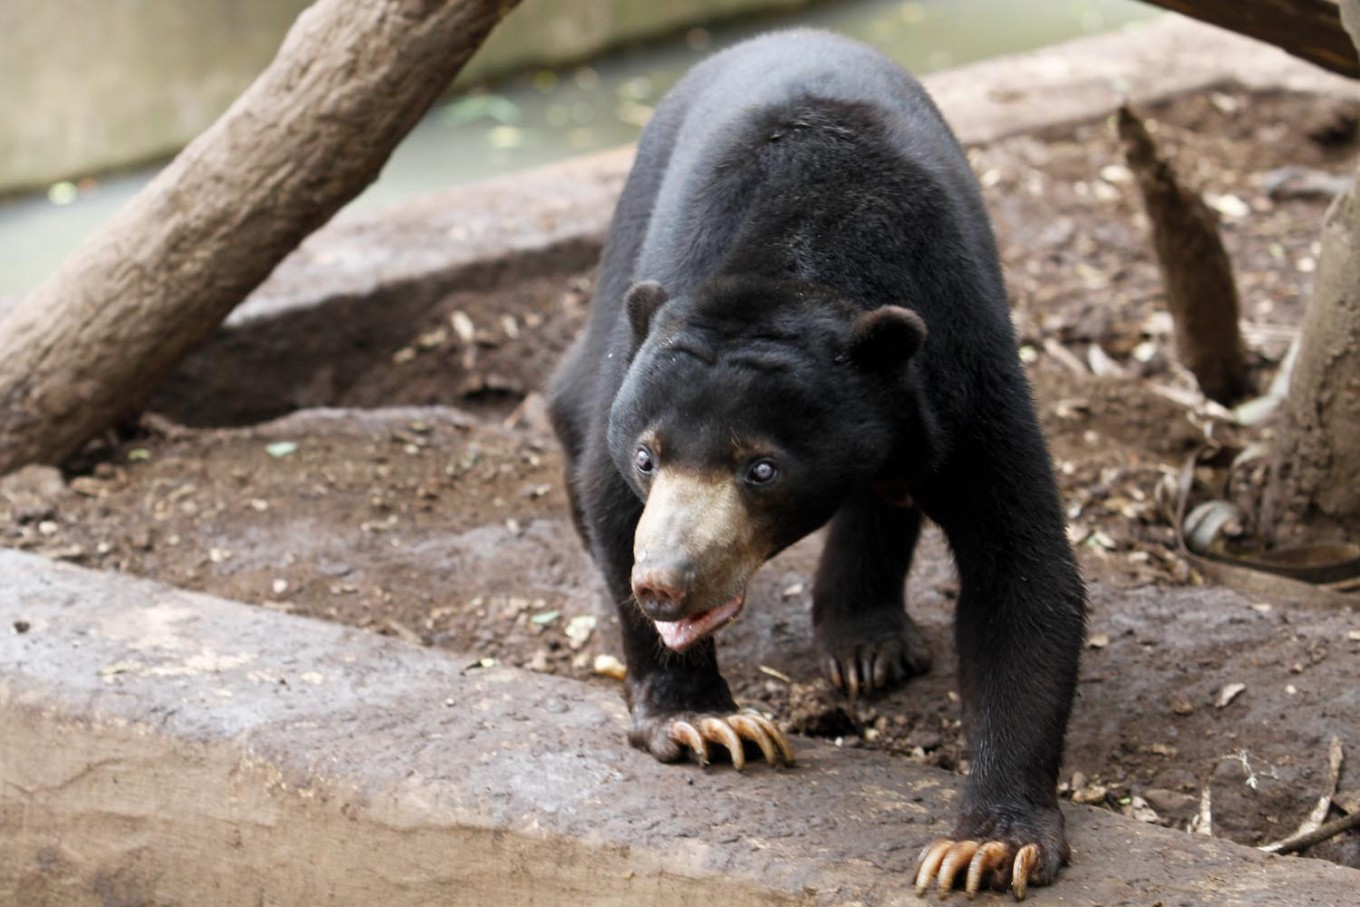 Hunt continues as bear attack victim improving